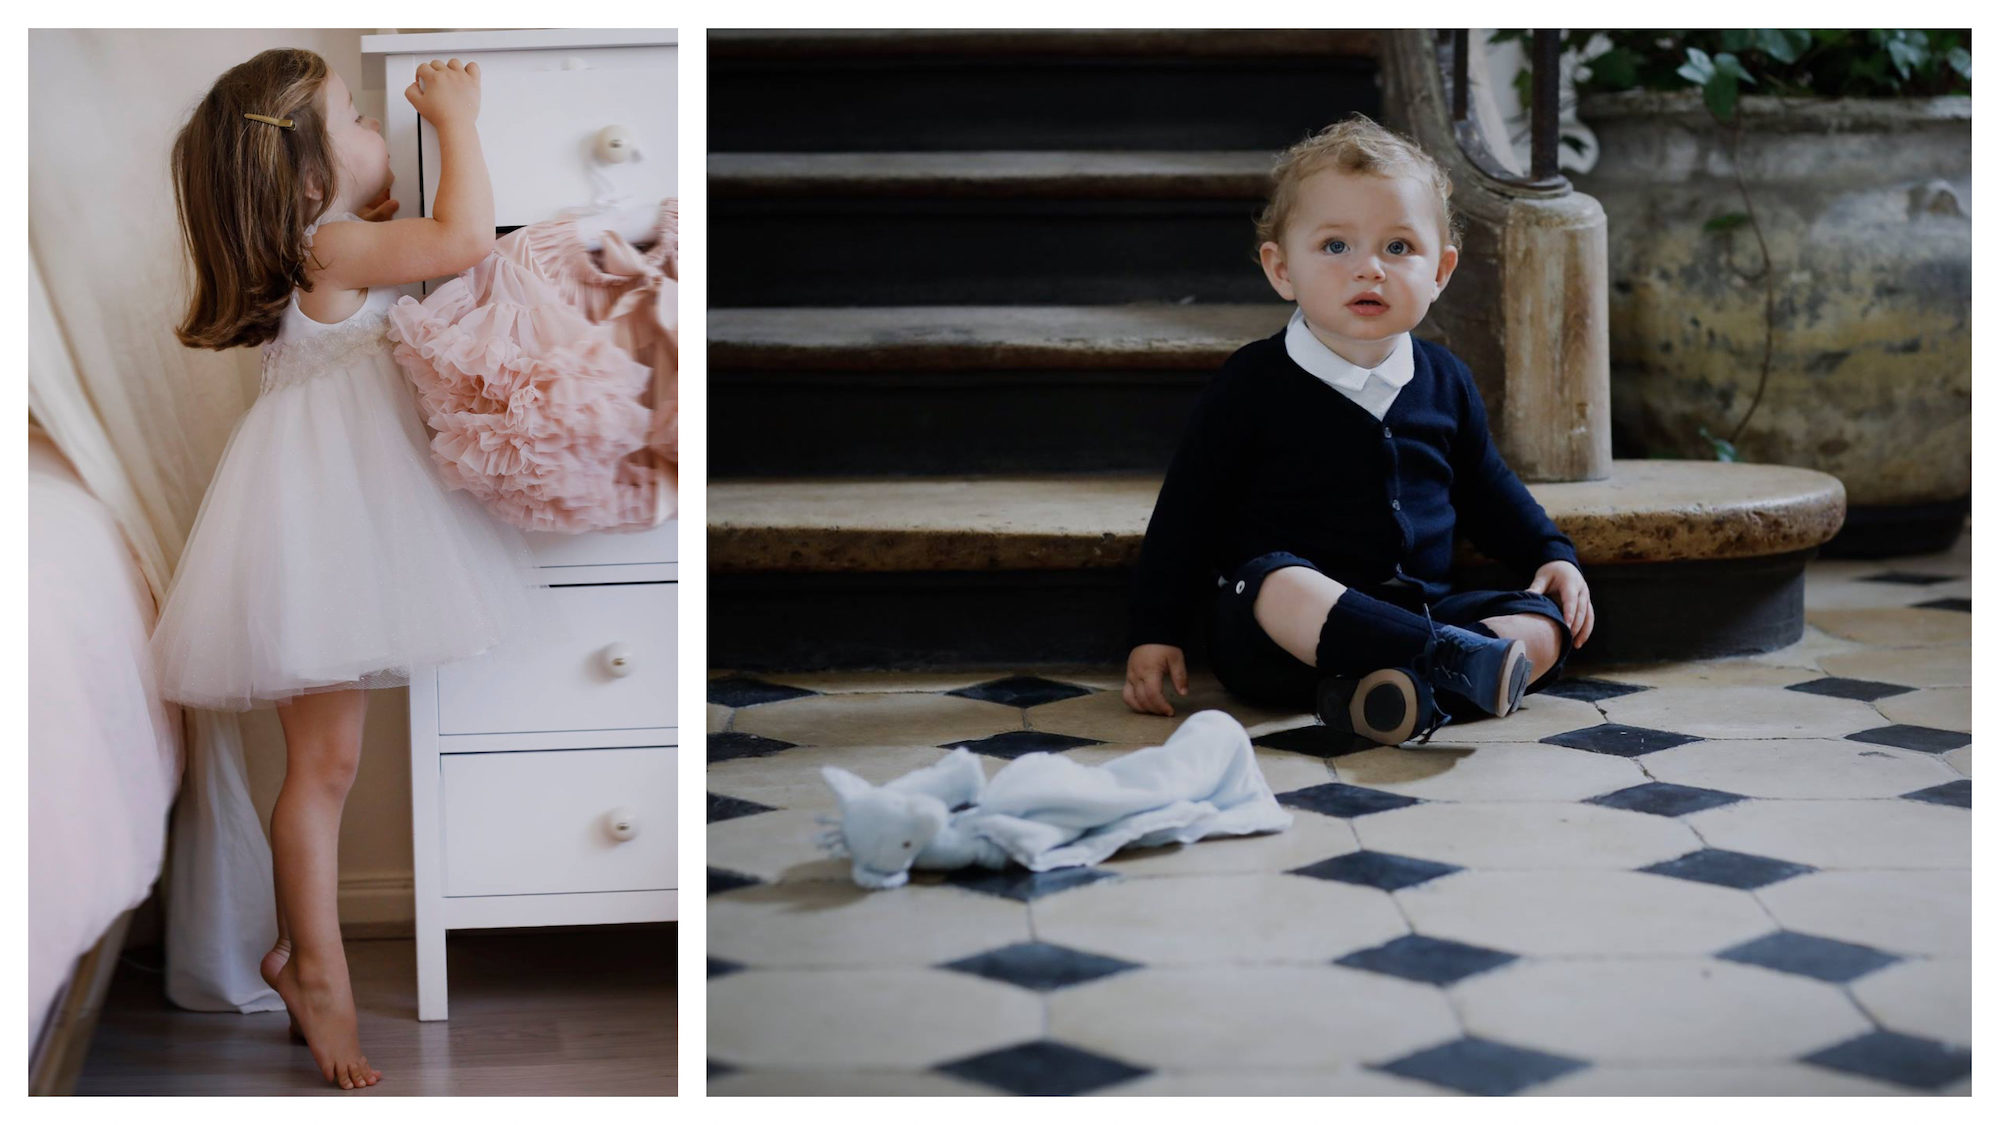 A little girl wearing a tutu and standing on tiptoe while peeping inside a drawer (left). A toddler wearing a chic navy cardigan and matching boots, sitting on tiled floors by a wooden Parisian staircase (right).